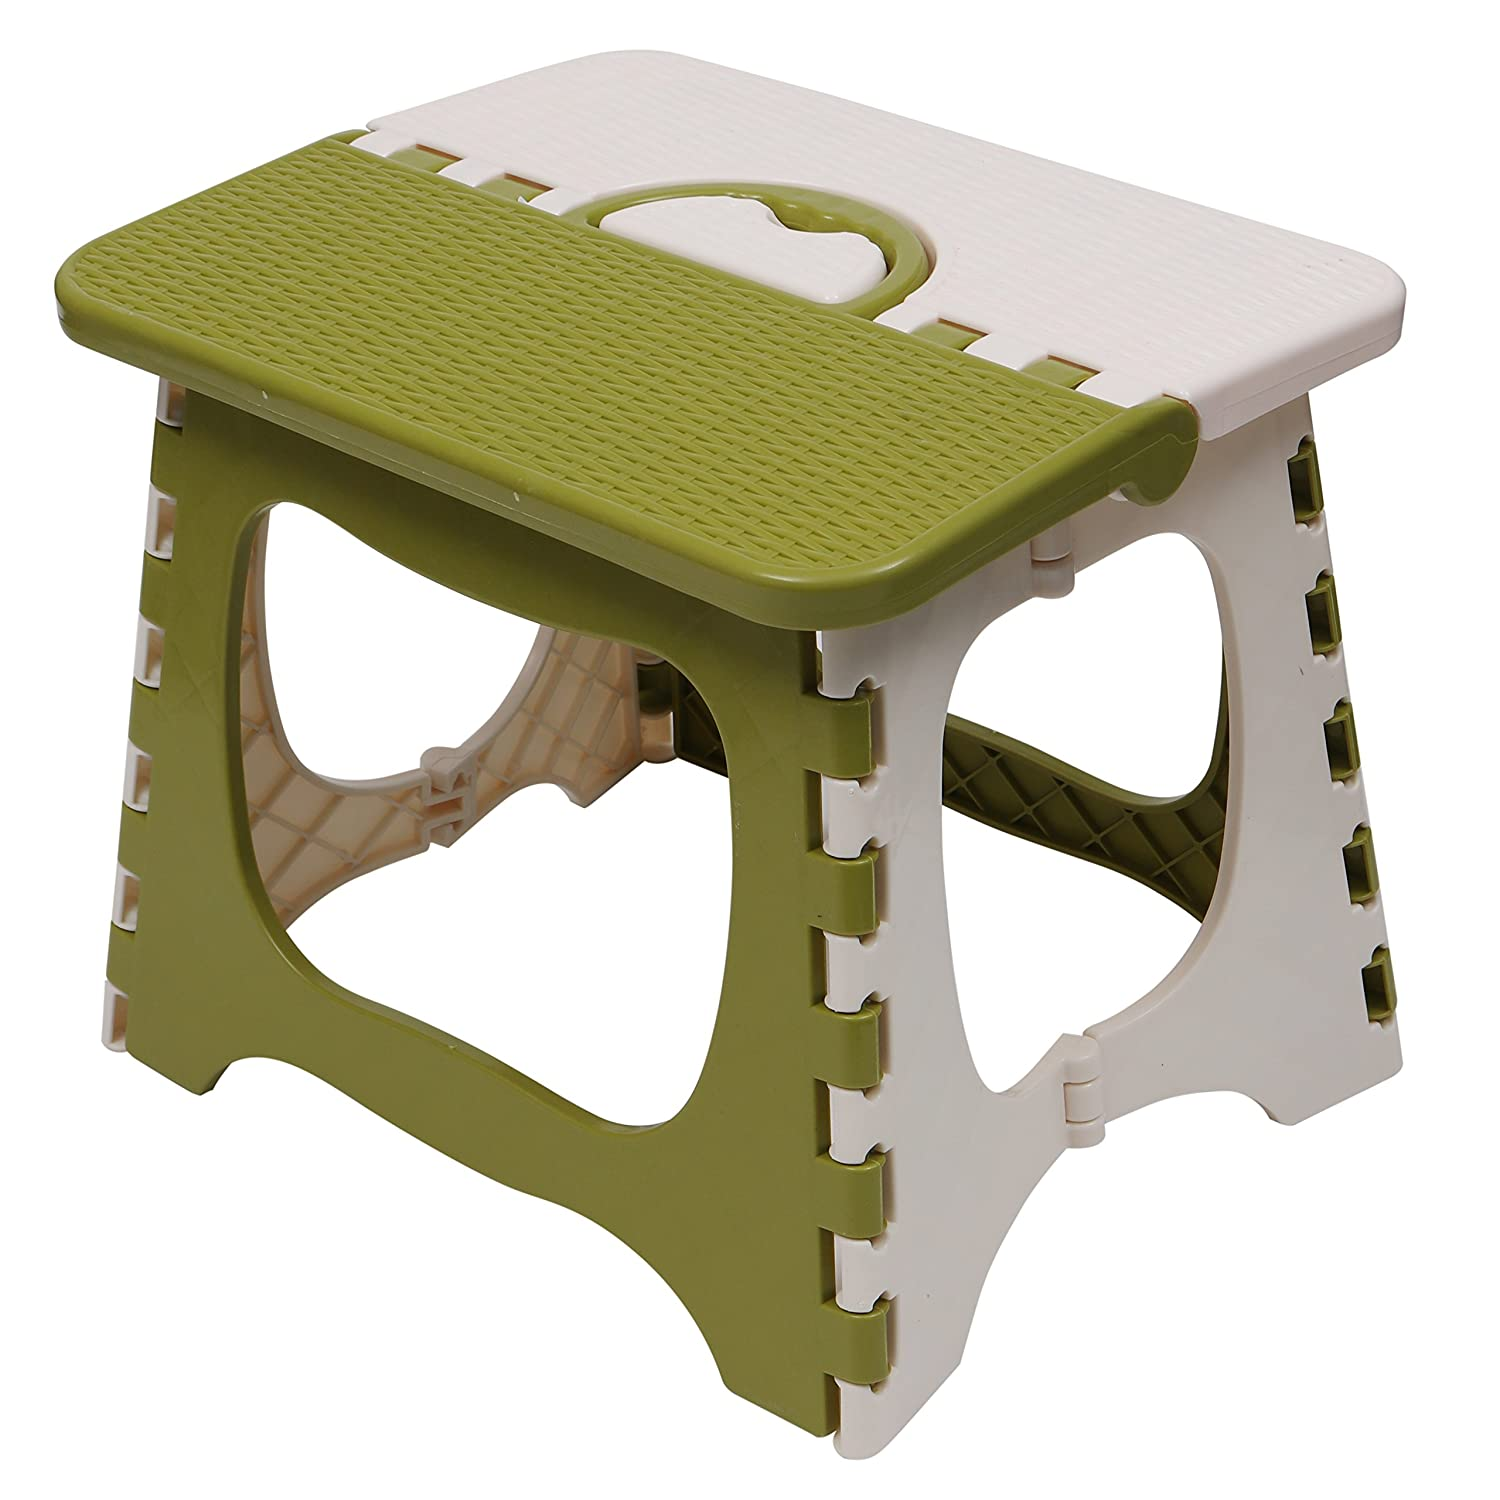 Kurtzy Foldable Step Stool For Kids And Adults Kitchen Garden